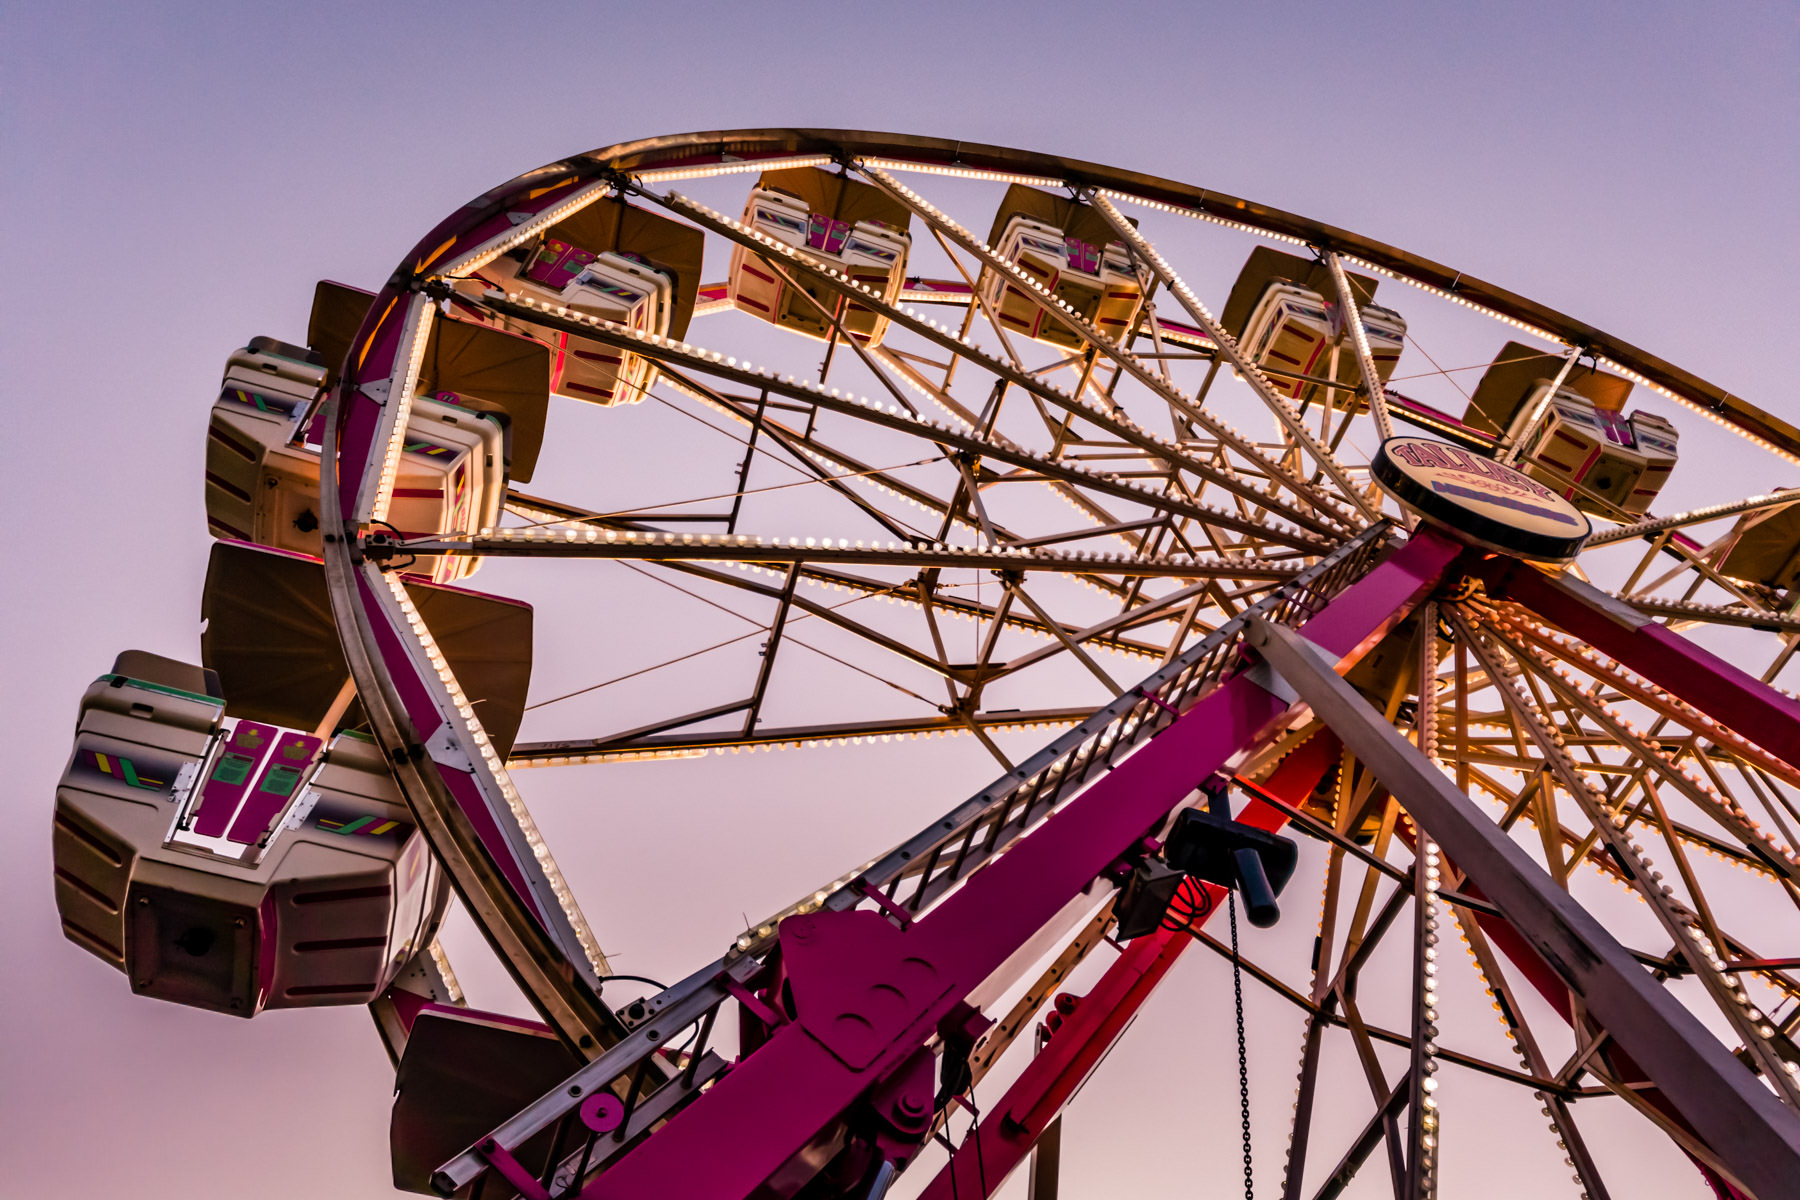 A ferris wheel rises into the evening sky at Addison, Texas' Taste Addison festival.